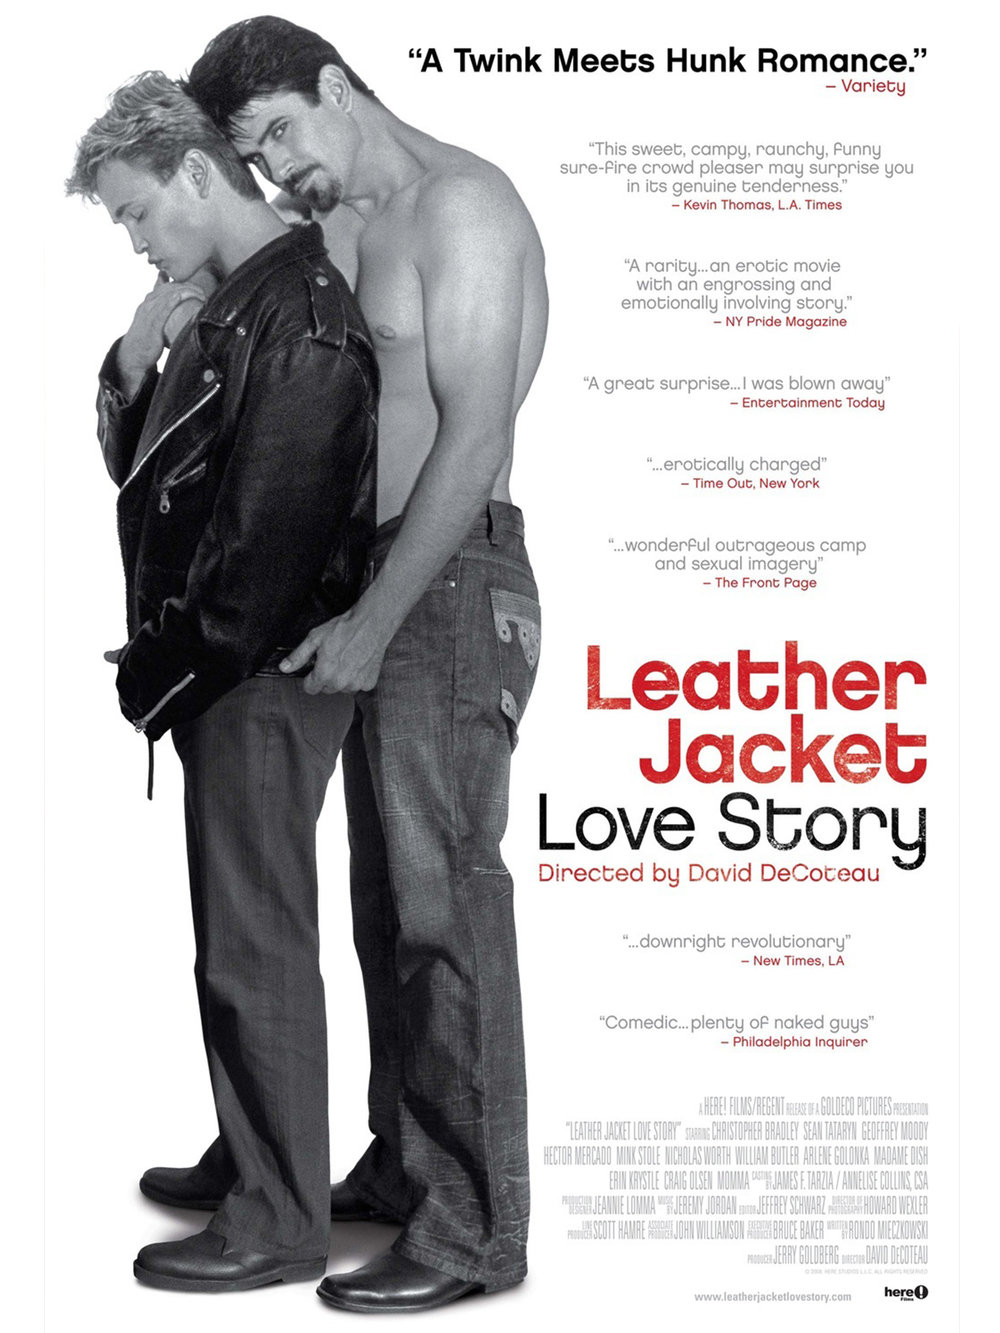 Here-LeatherJacketLoveStory-Full-Image-en-US.jpg